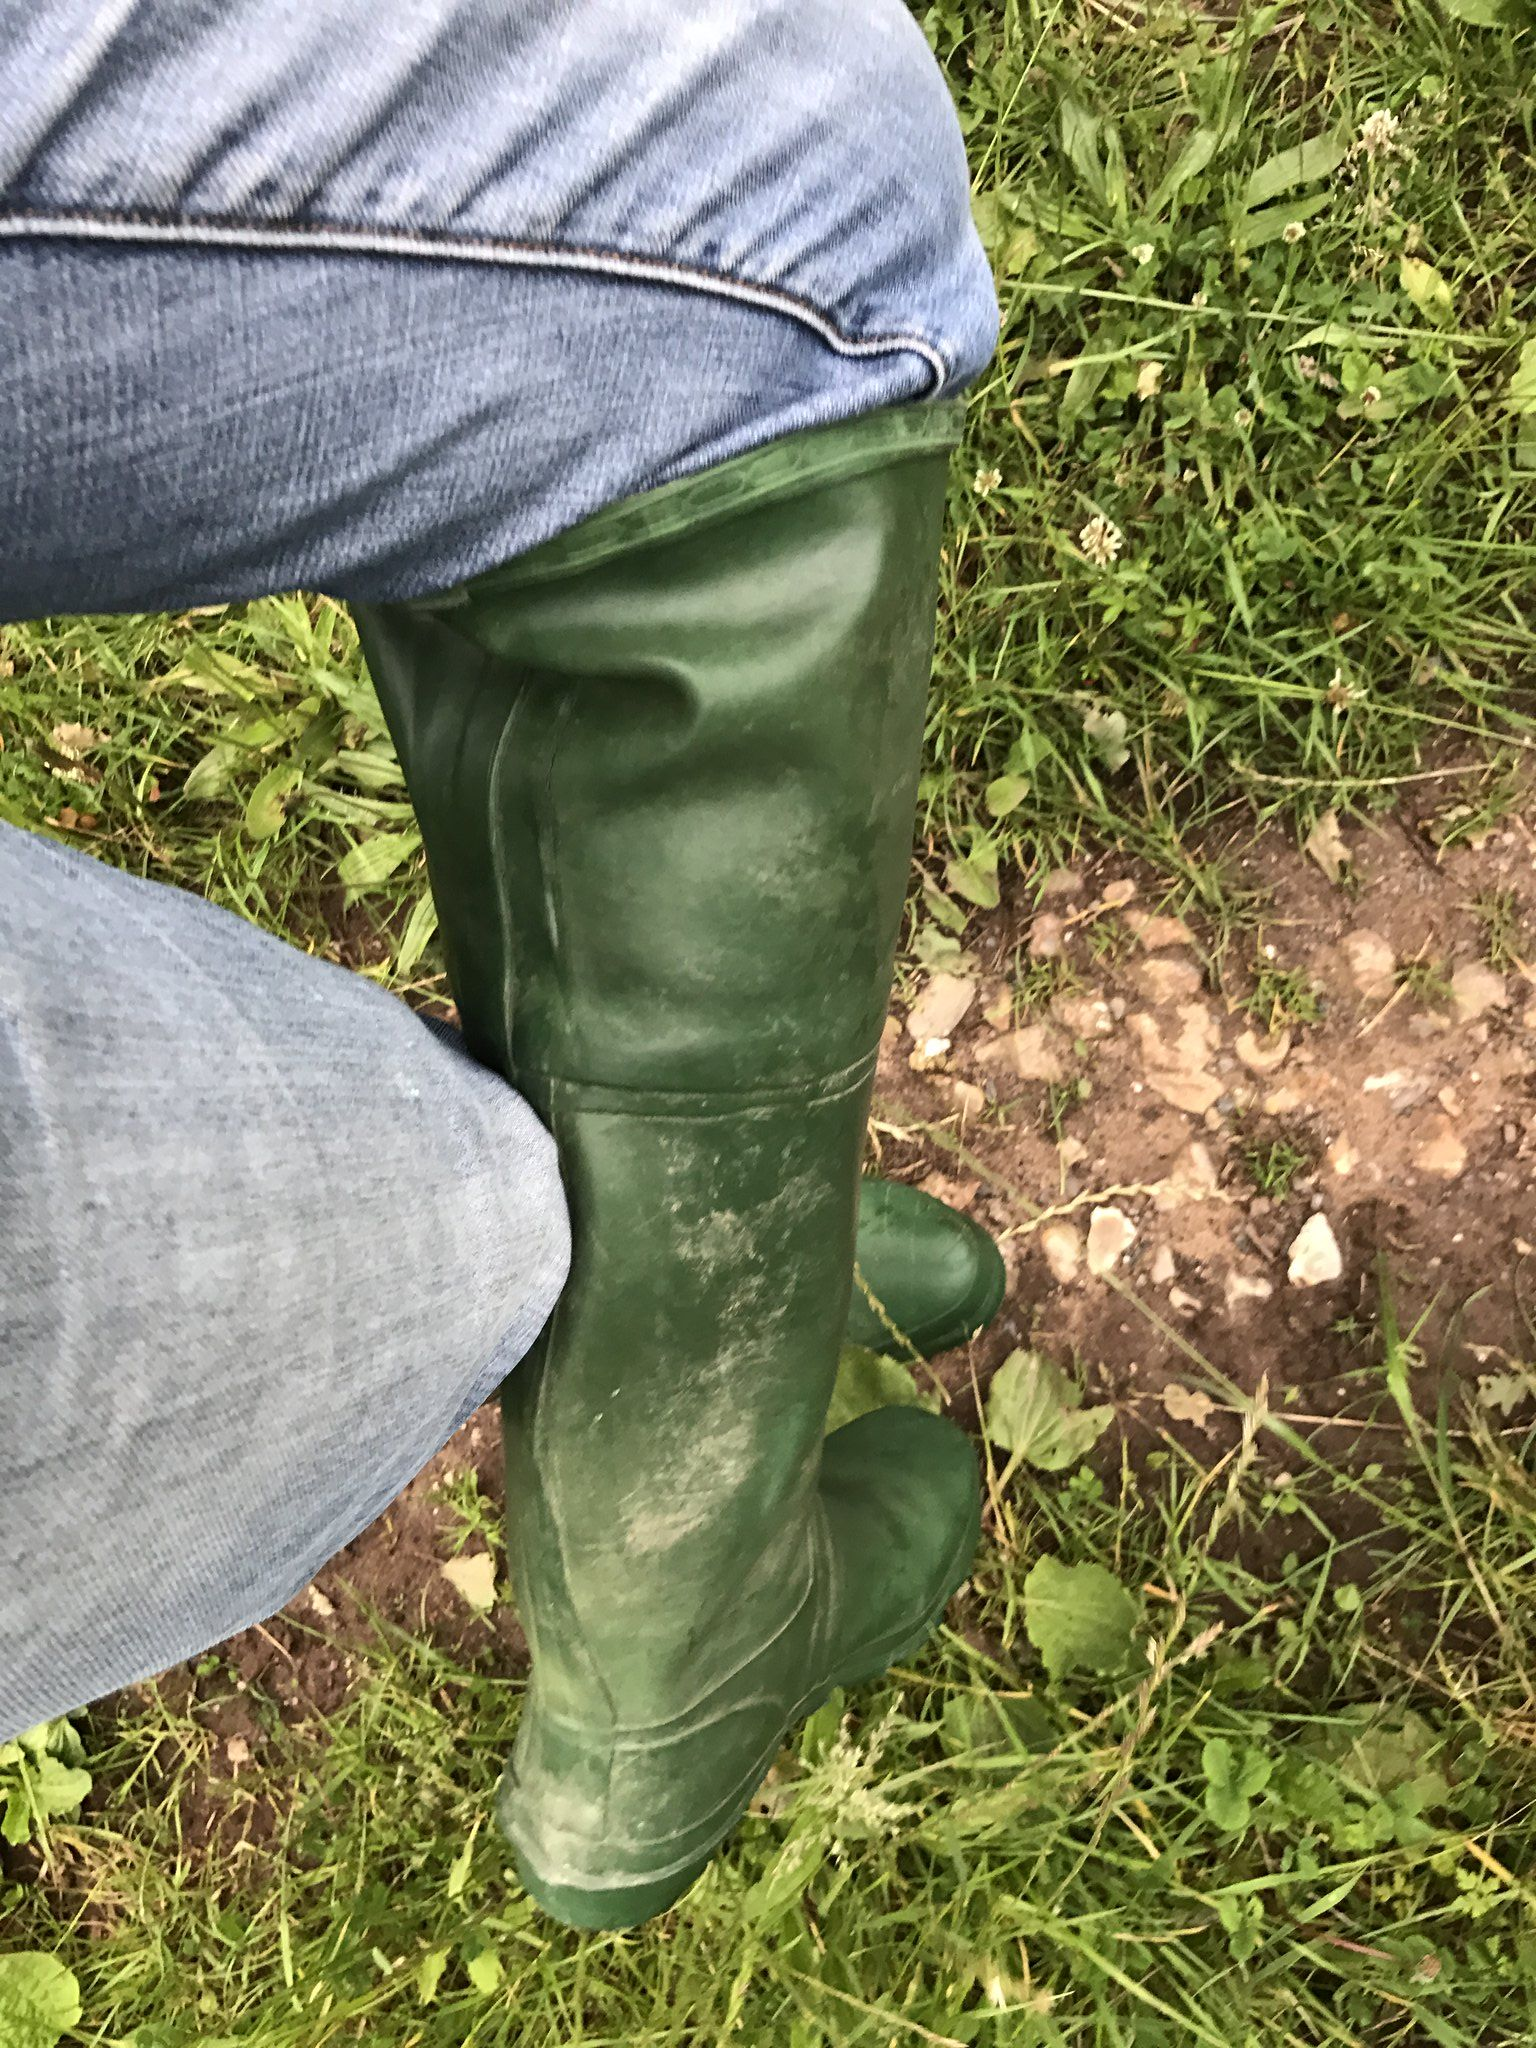 Pin by Kestutis Paskevicius on Boots | Womens rubber boots